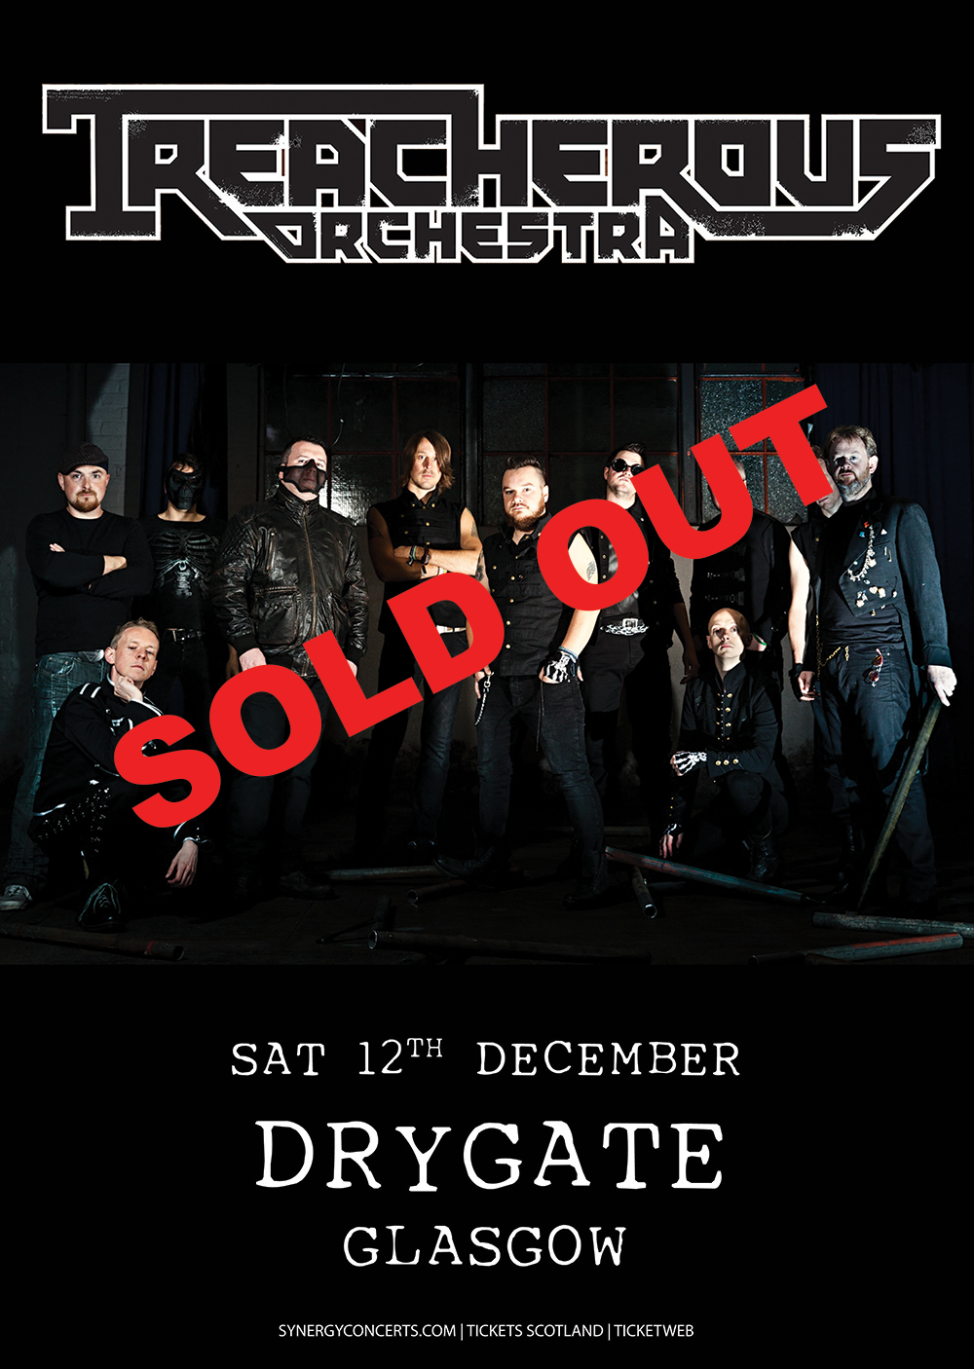 Treacherous Orchestra Glasgow SOLD OUT